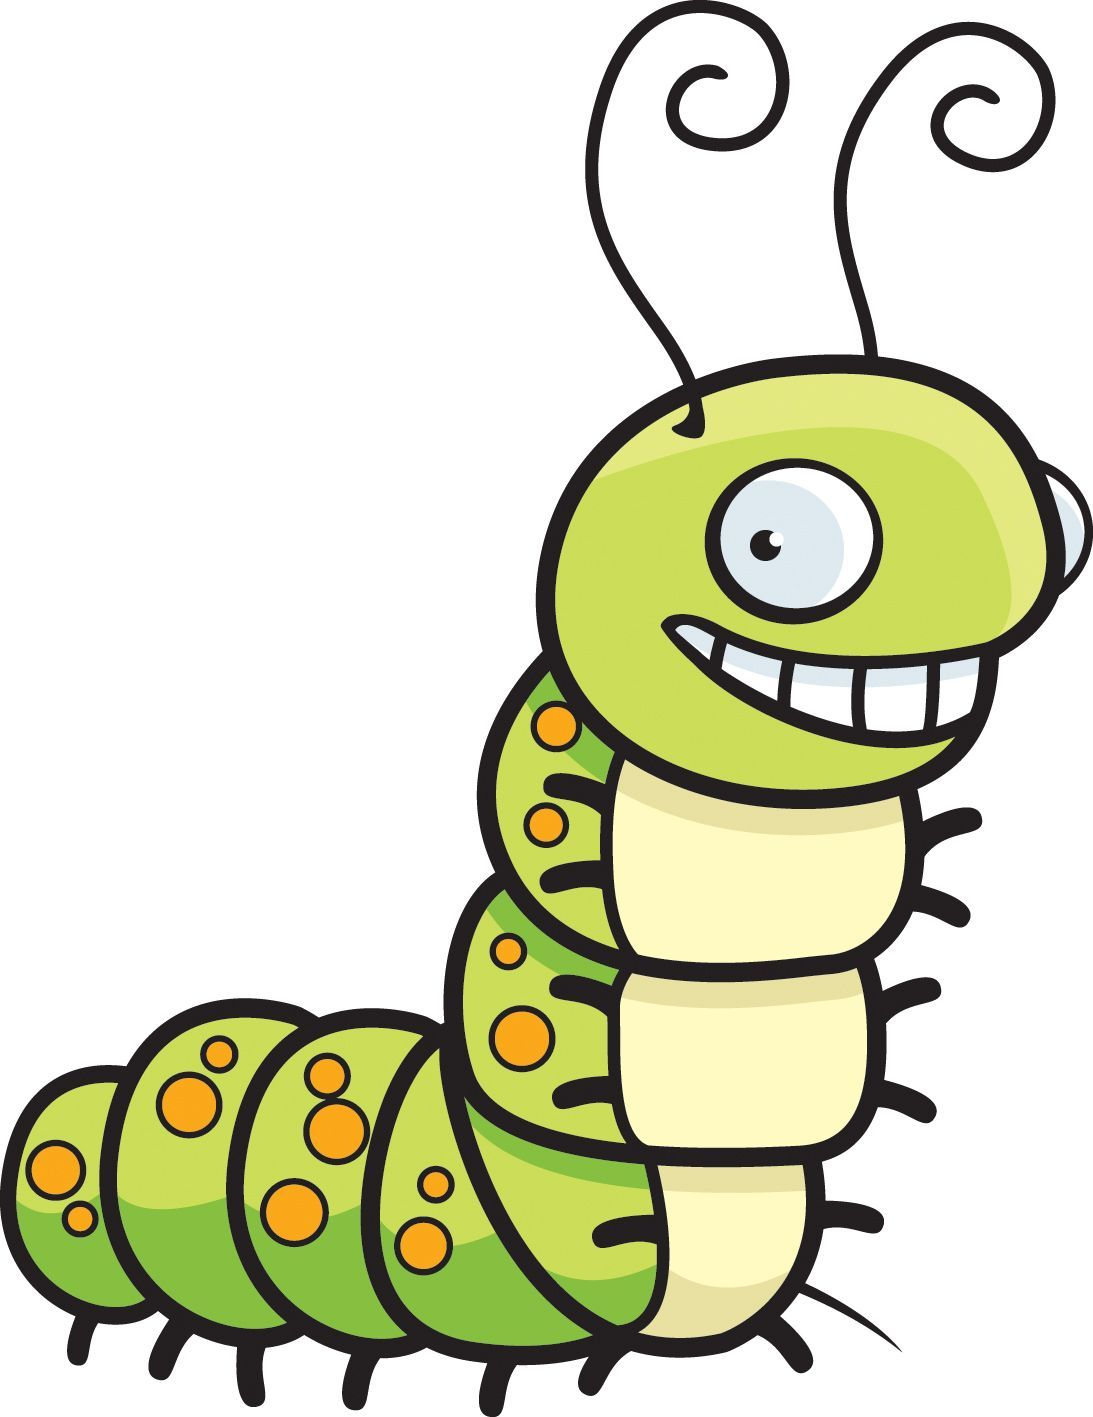 Caterpillar and butterfly clipart 7 » Clipart Portal png free